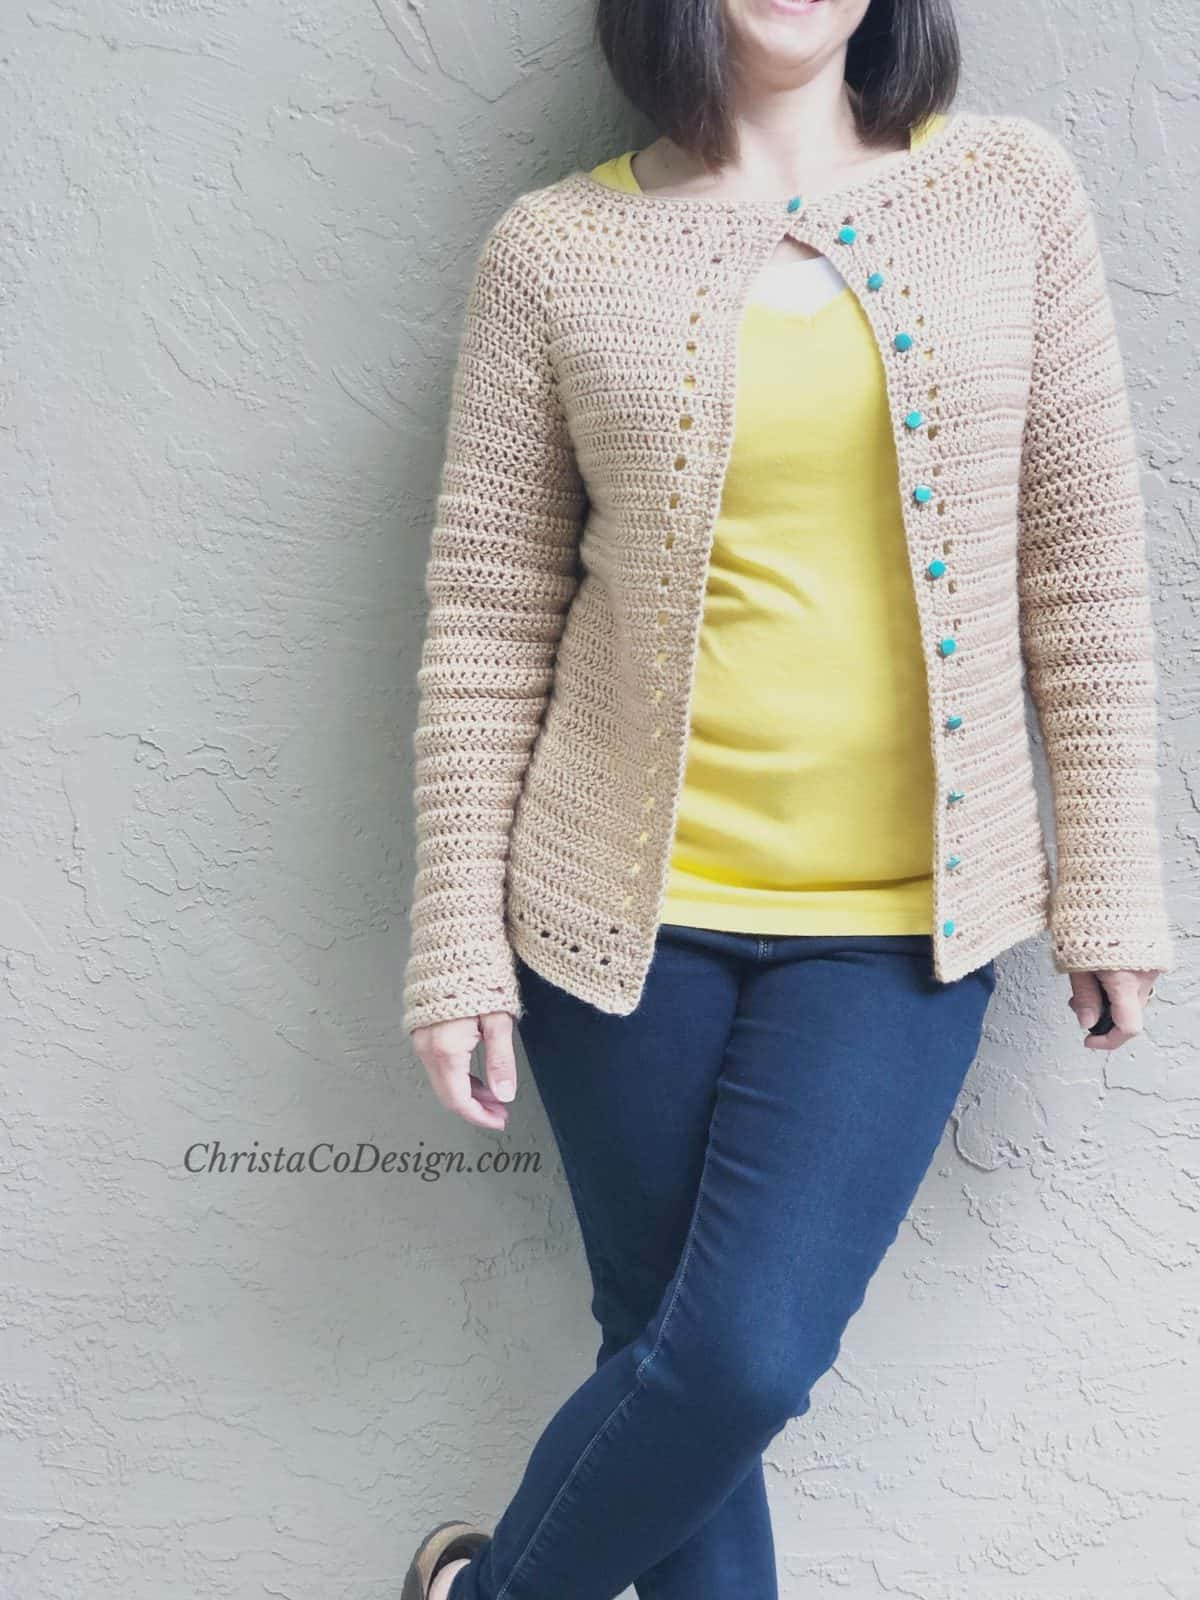 The Spring Cardi-a Free Crochet Cardigan Pattern